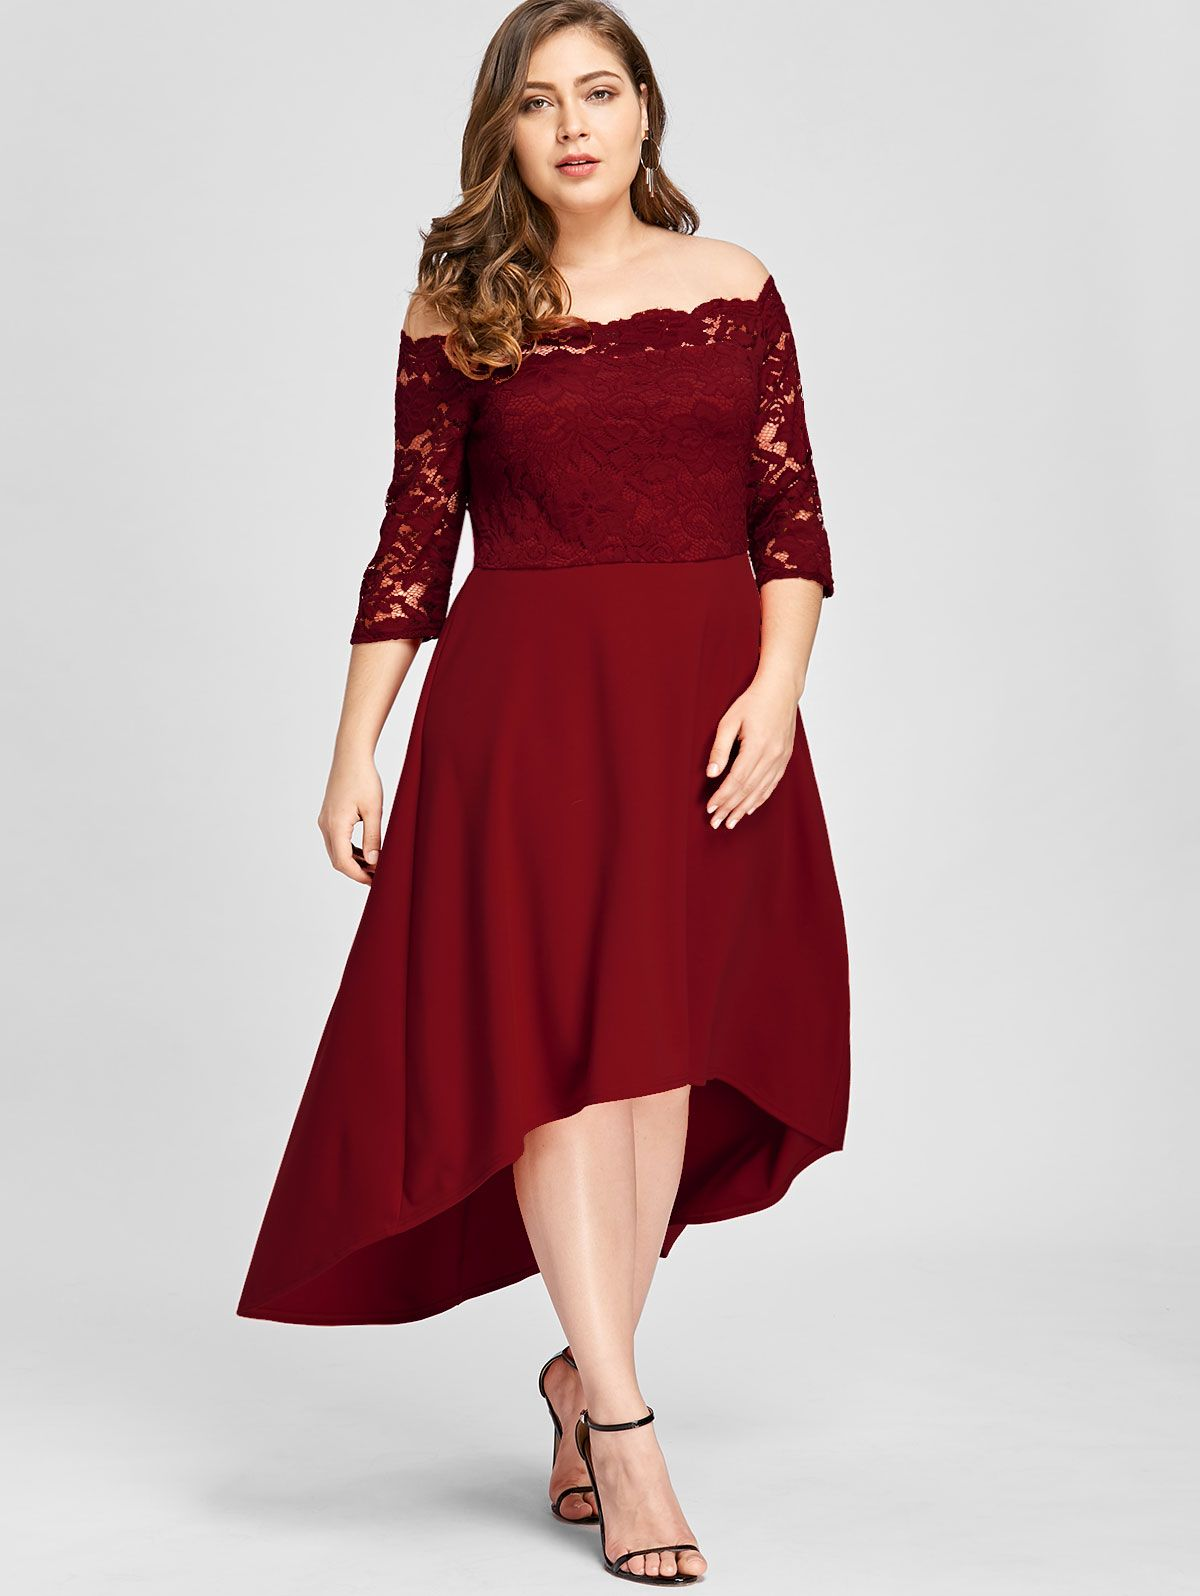 1f66556055f26 Free shipping worldwide.Plus Size High Low Off Shoulder Lace Dress.   plussize  lace  lacedress  reddress  offshoulder  fashion  womensfashion